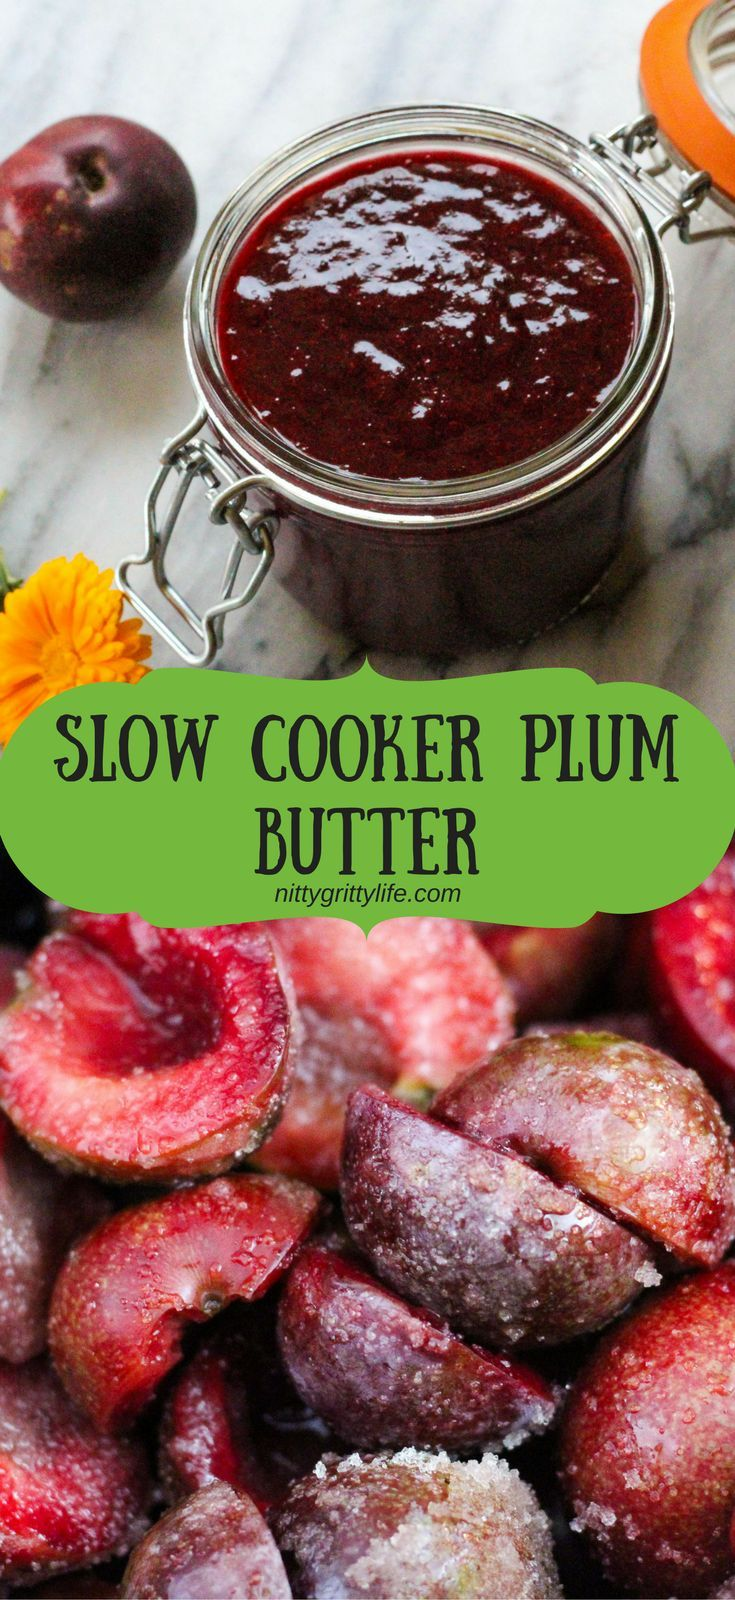 Plum butter made in the slow cooker results in a rich, flavorful fruit spread ever so slightly nuanced with the almond notes of the plum pits.  This canning recipe makes approximately 4 half-pints.